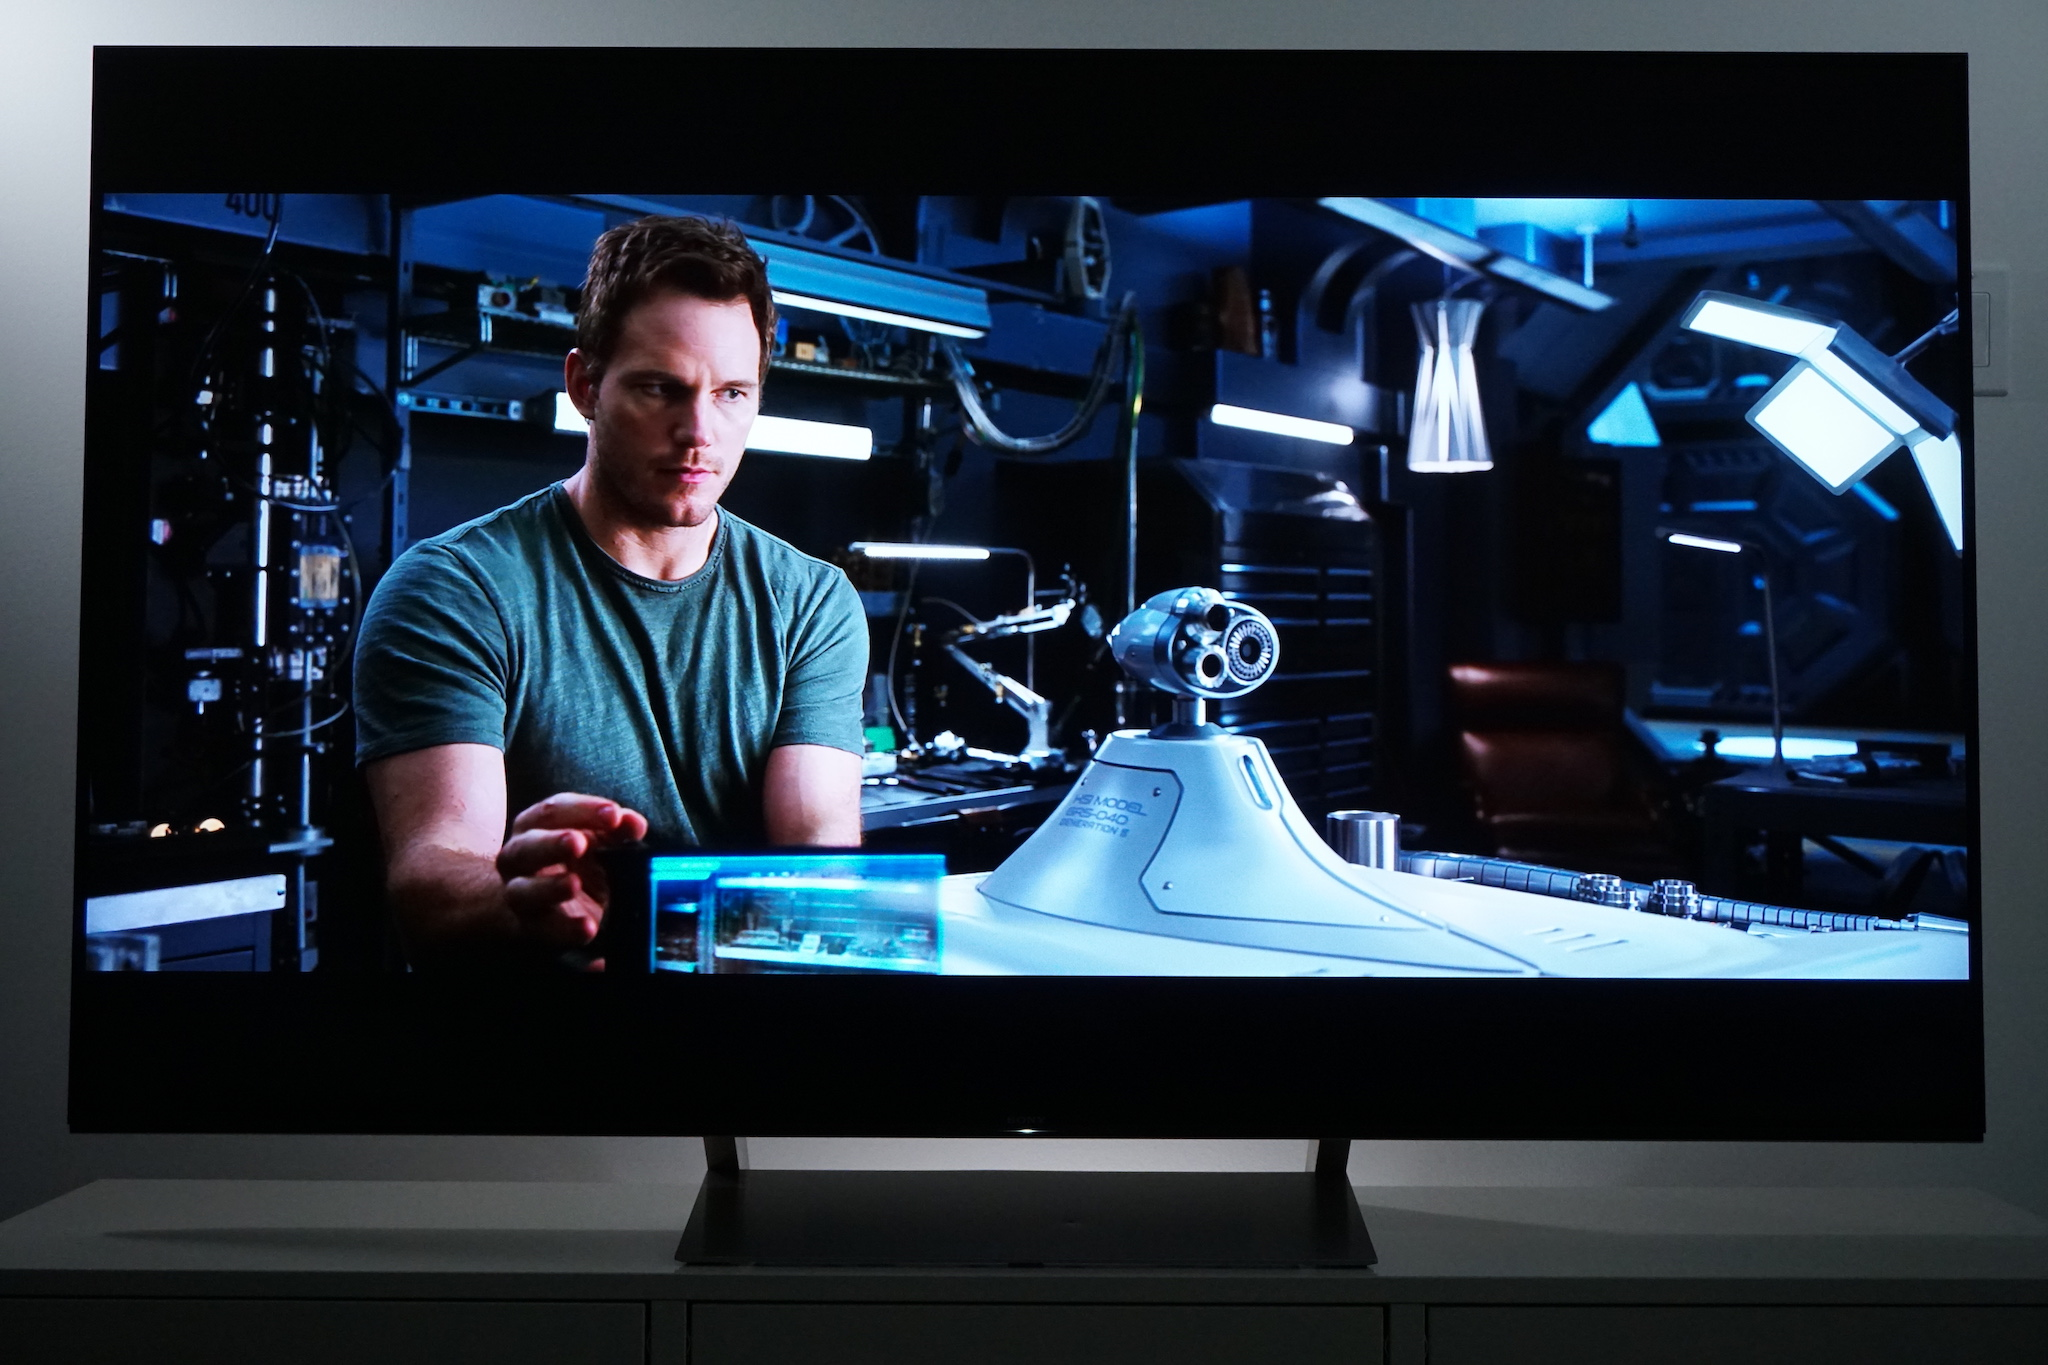 sony tv best buy. Streaming Services Such As Netflix, YouTube, And Amazon Streaming, Now Provide A Decent Selection Of TV Shows Sony Tv Best Buy .